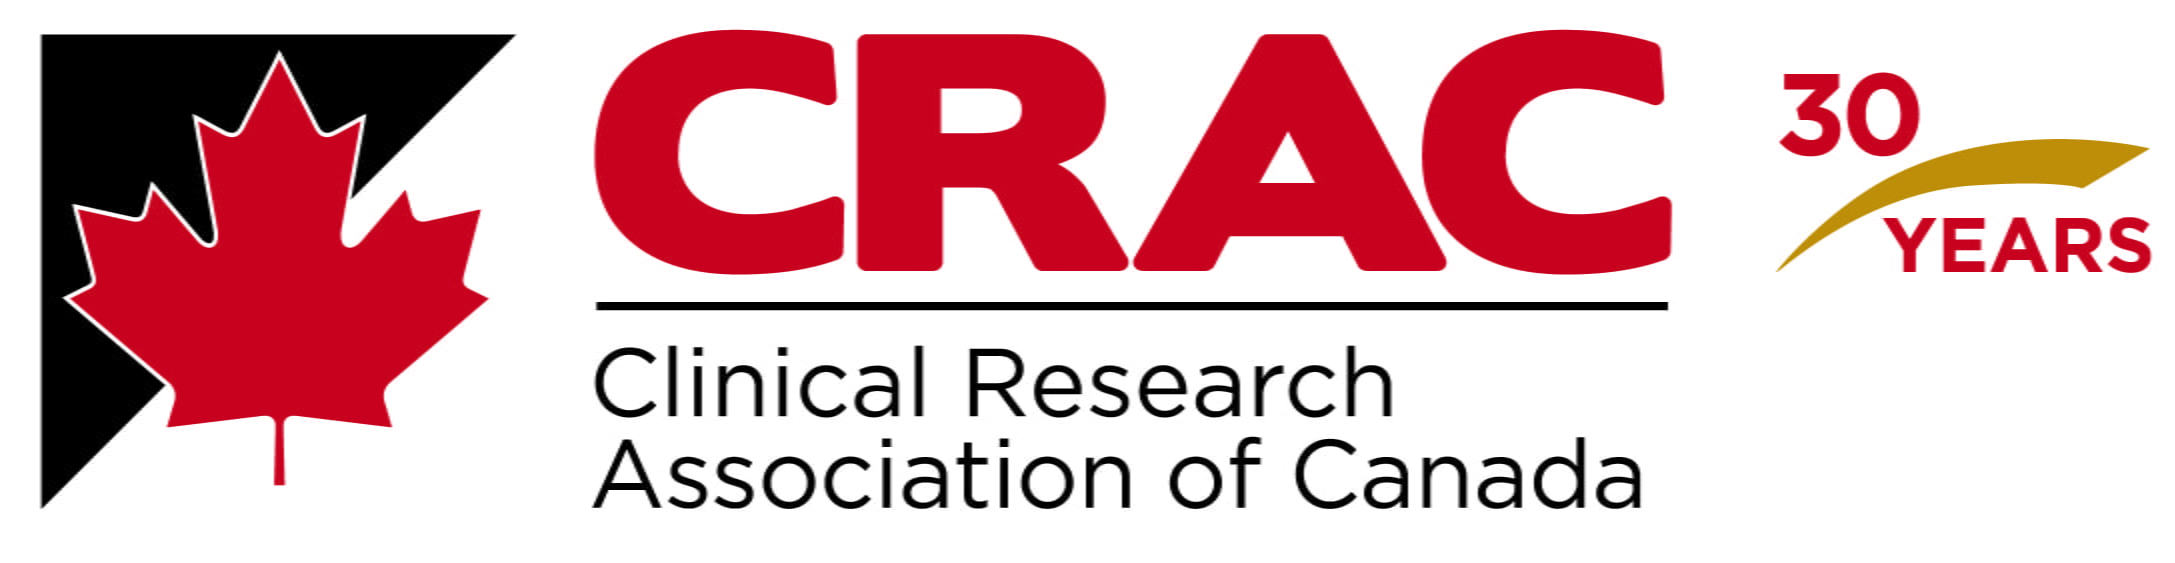 Clinical Research Association of Canada